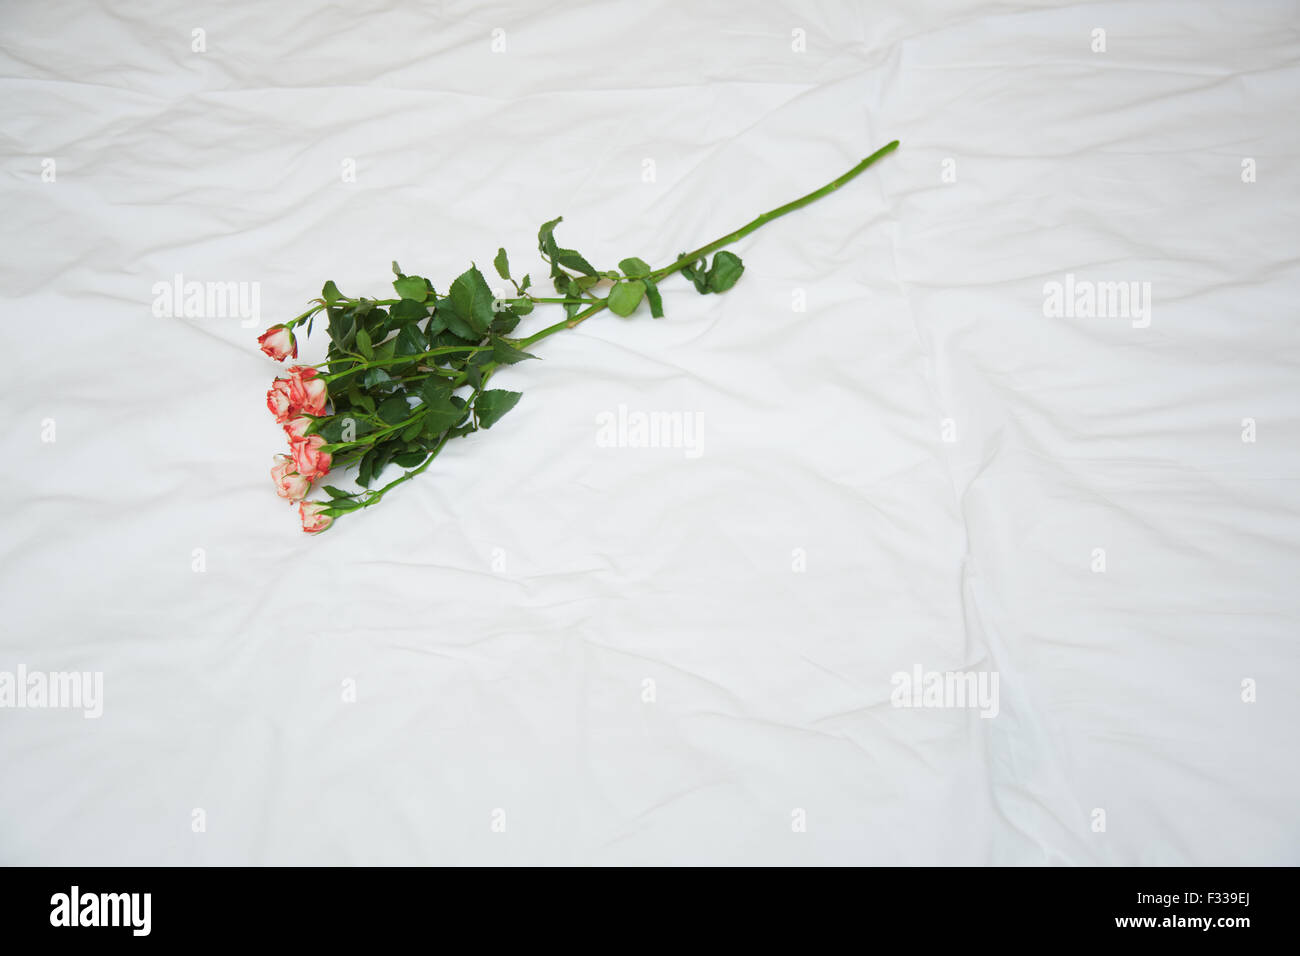 Rose on a bed. View from above. Horizontal photo - Stock Image